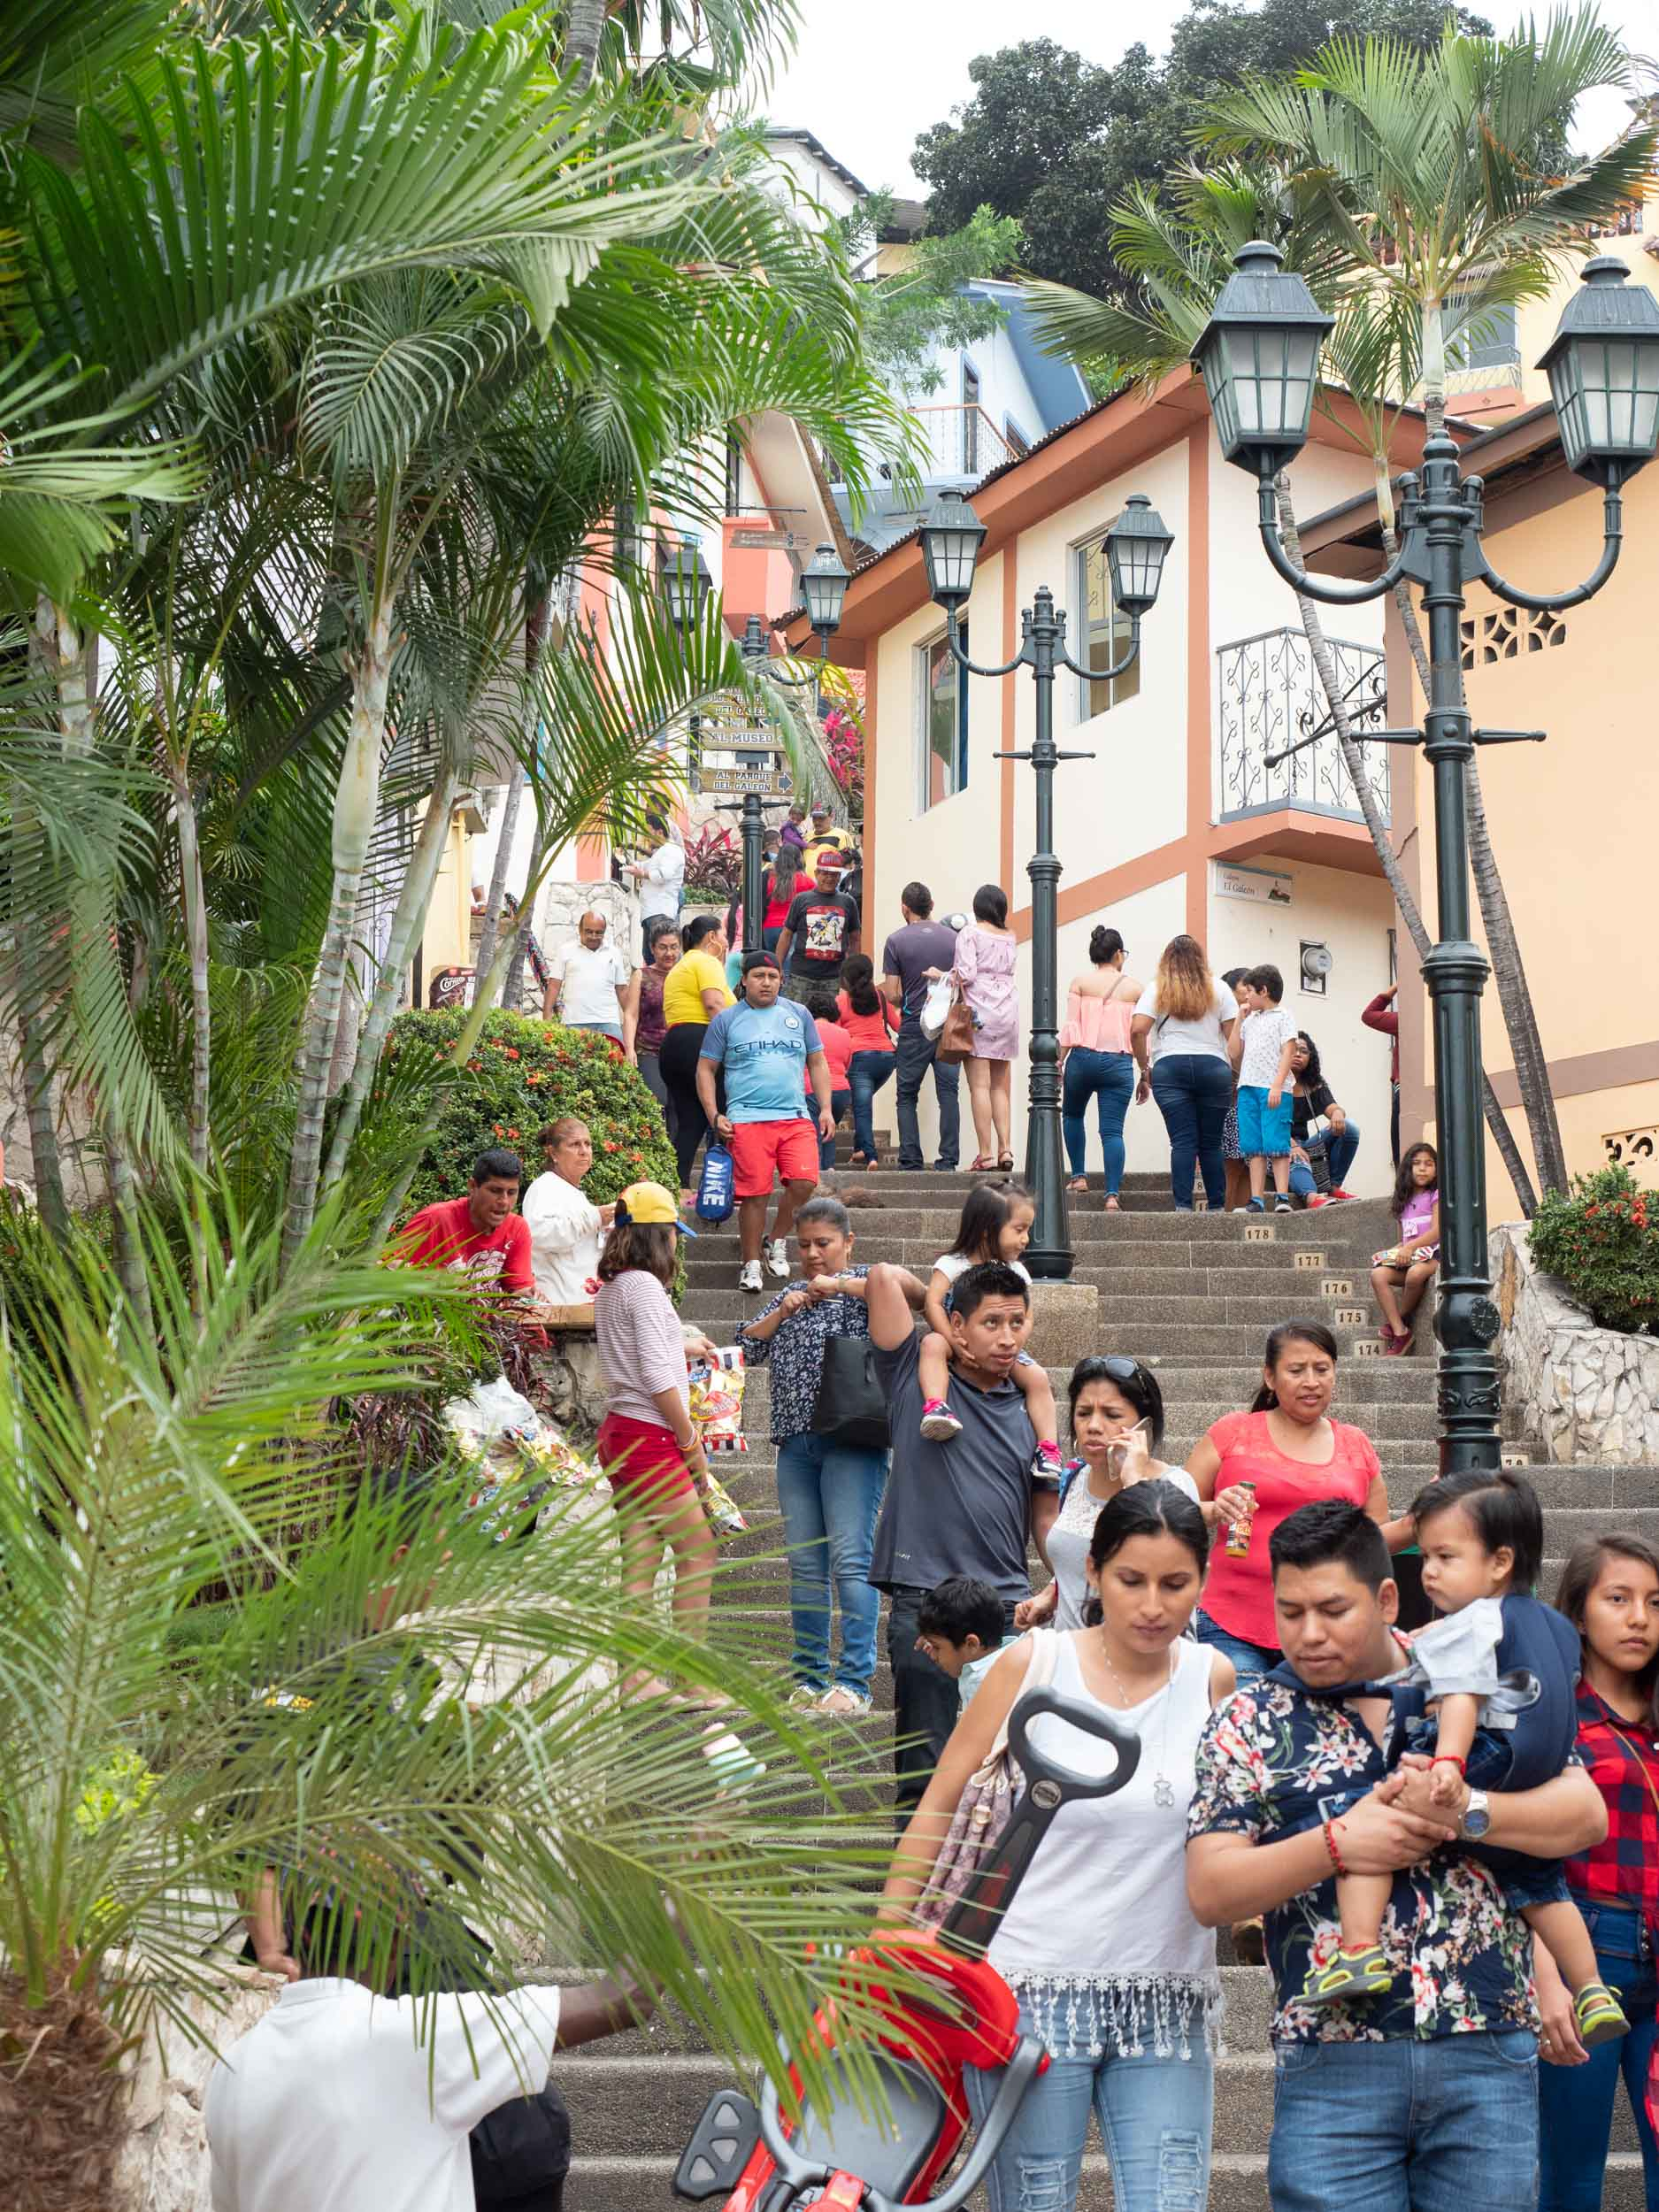 The oldest neighborhood in Guayaquil, Las Peñas, was a fascinating climb of 444 steps. I failed in every way in this picture to capture the experience of visiting that community. Click picture for a larger image.